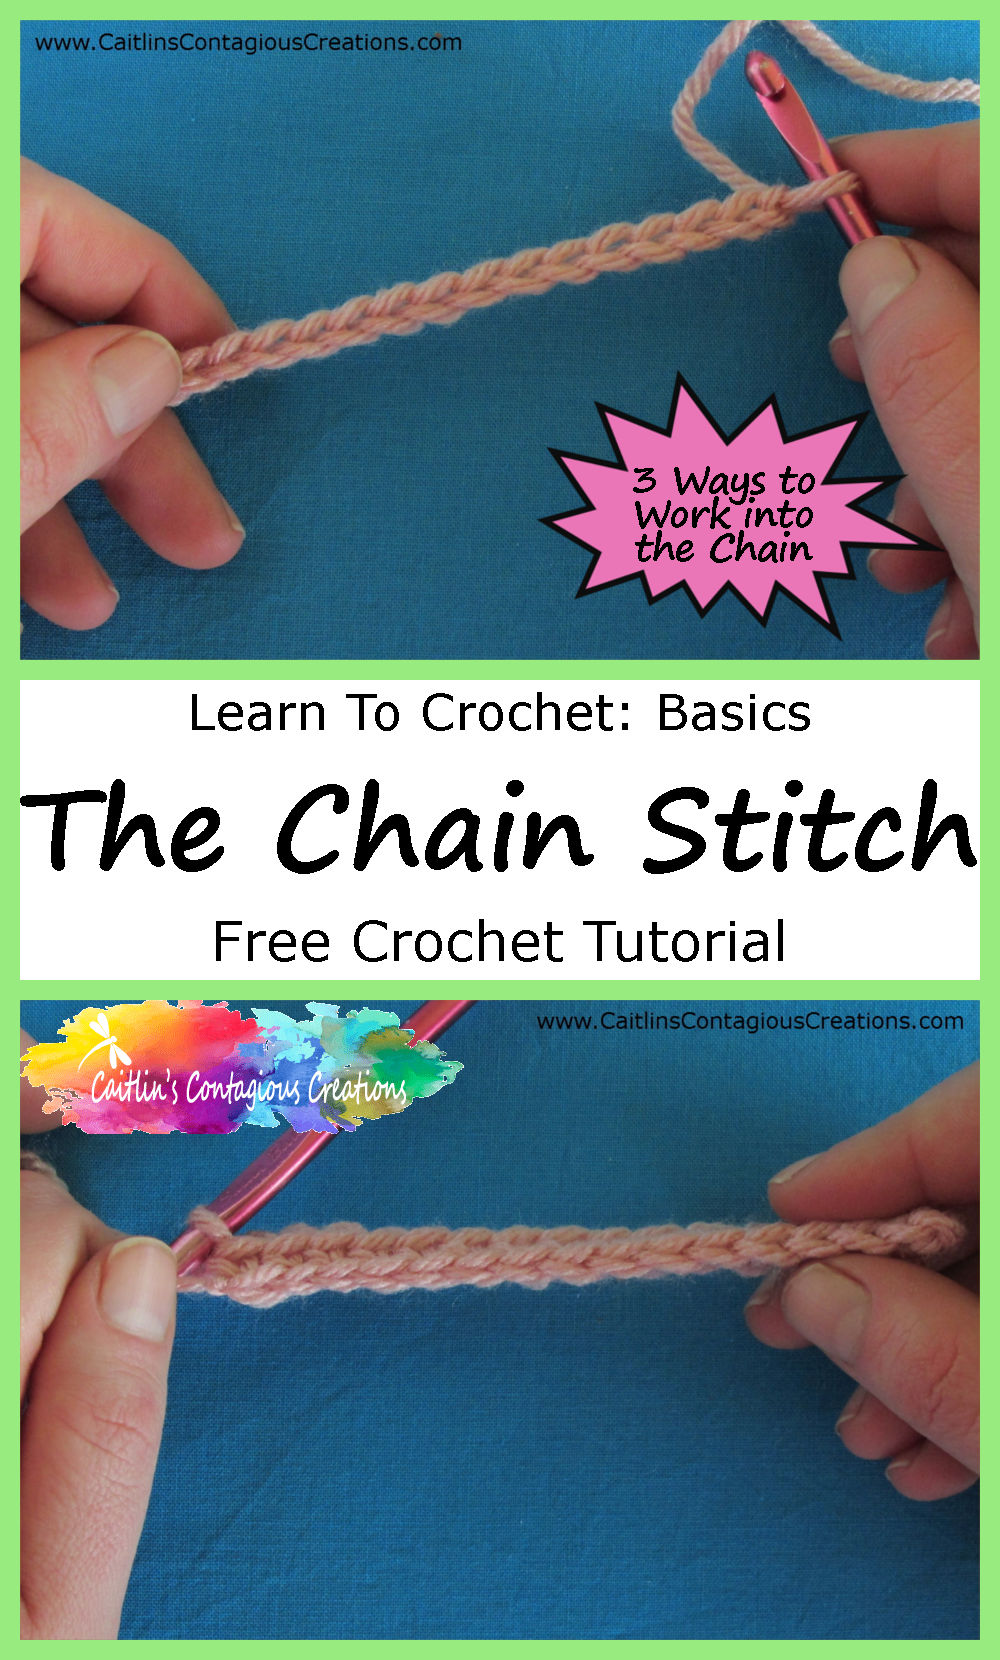 Chain Stitch Crochet Tutorial Caitlins Contagious Creations